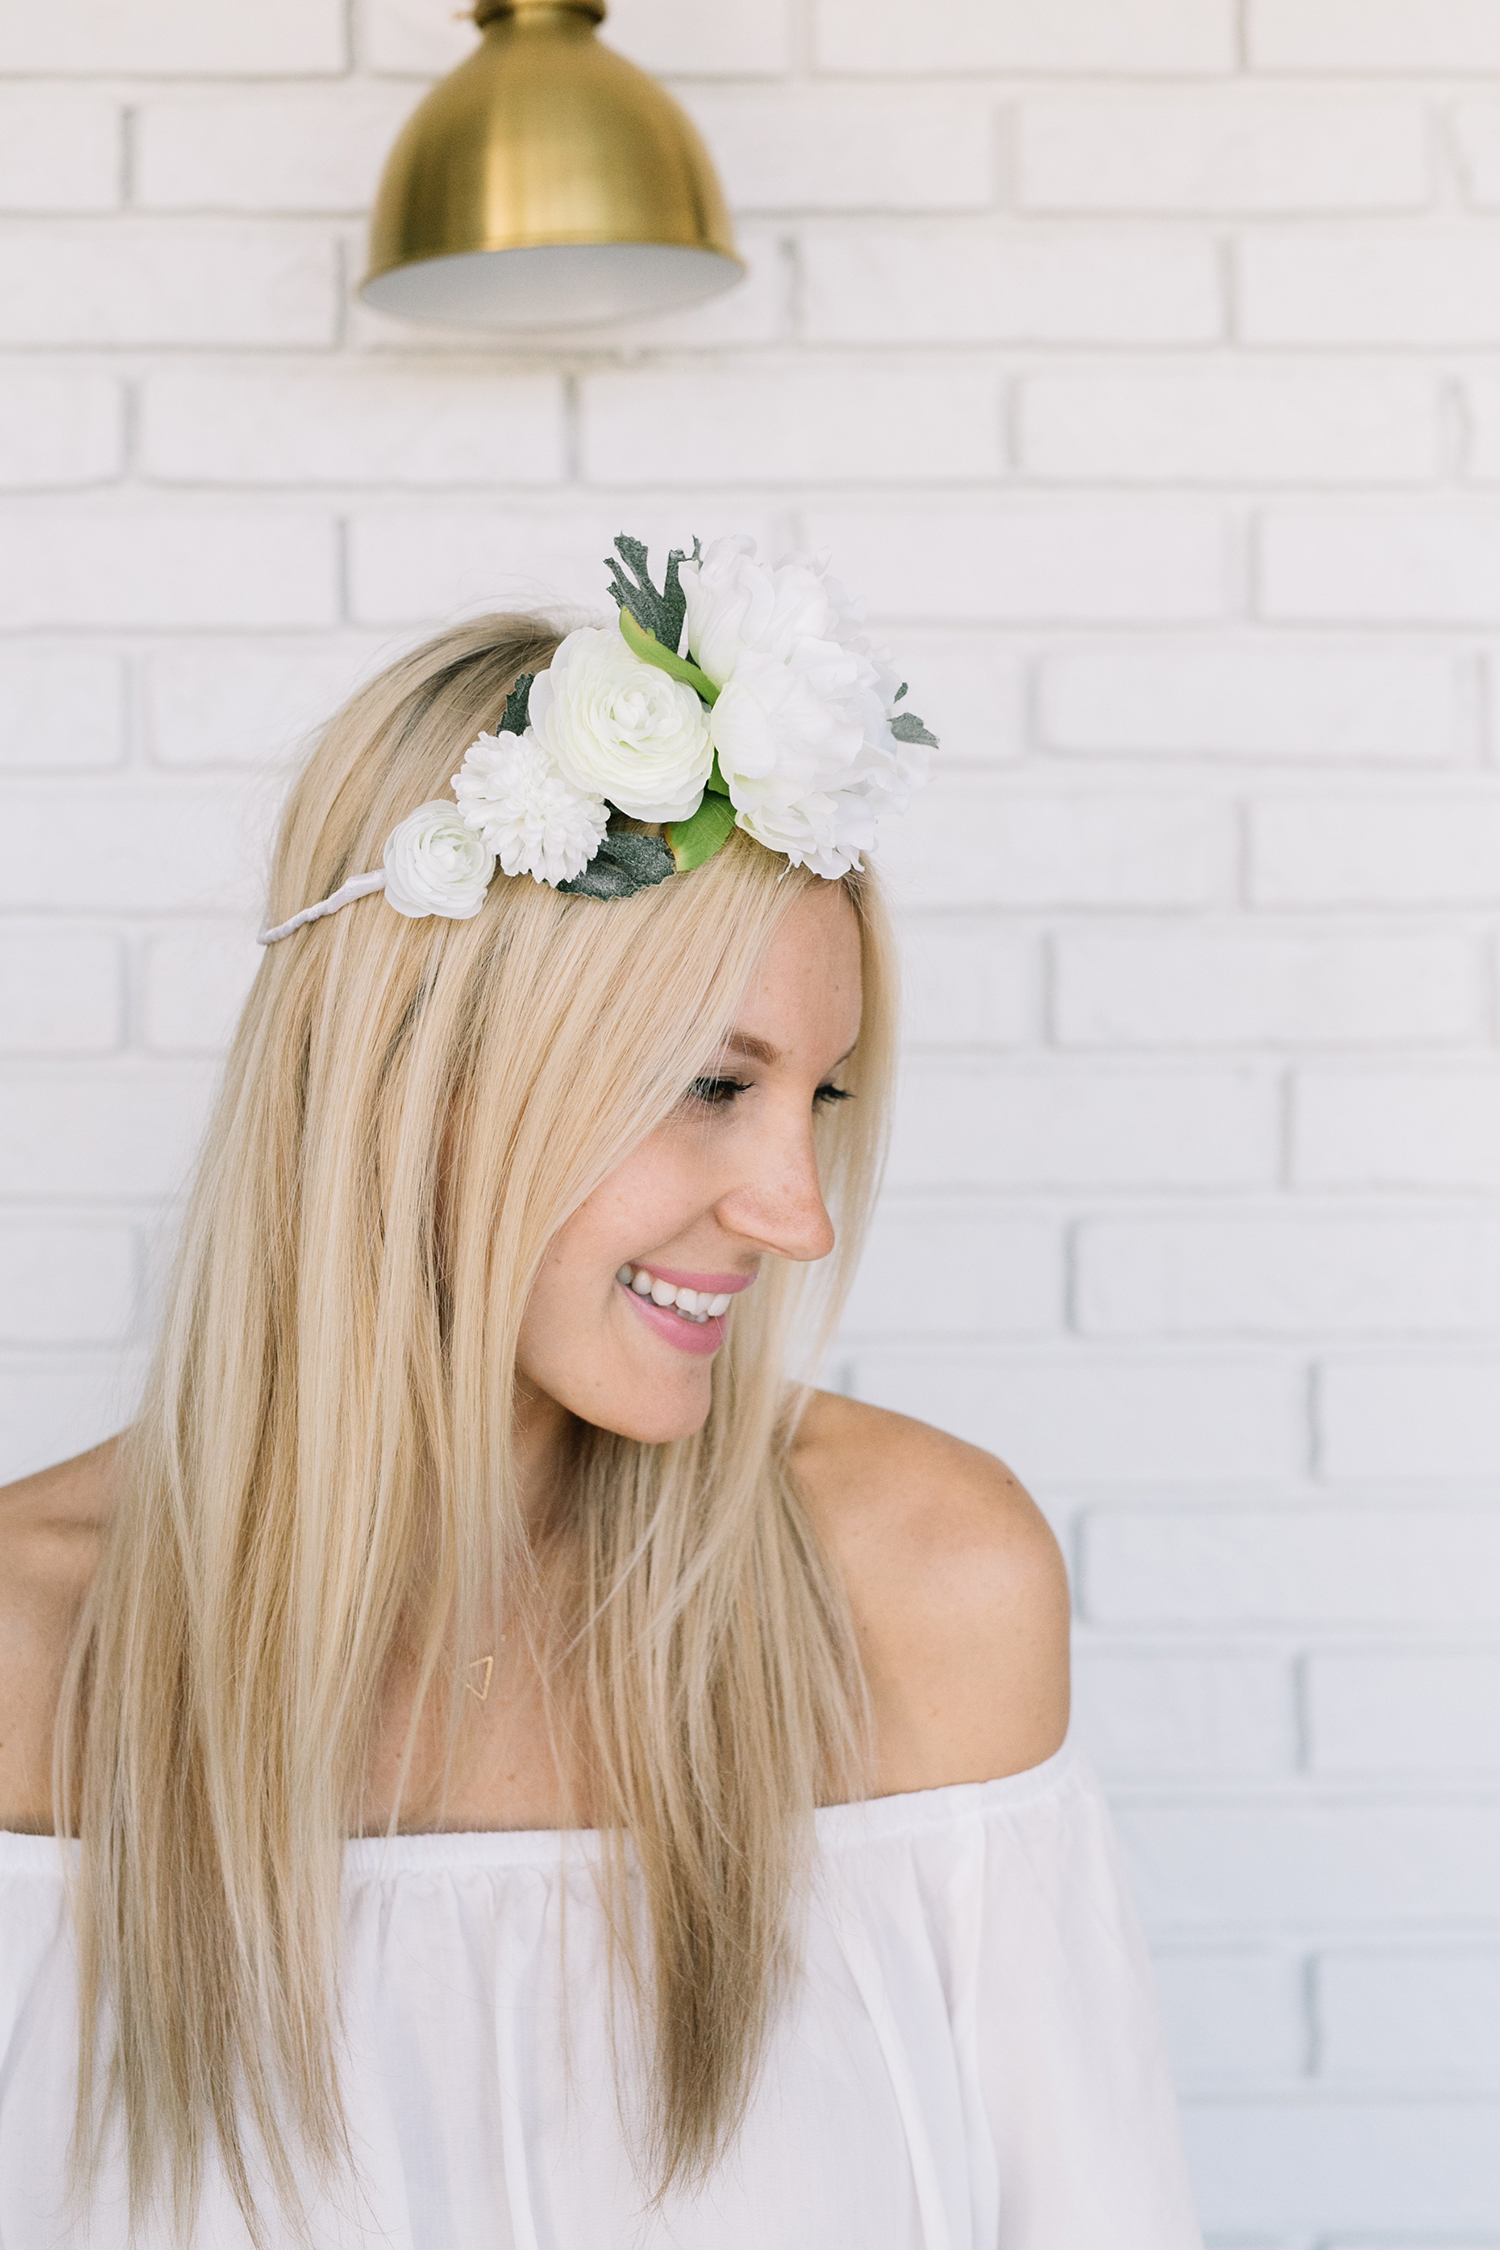 These 50 diy flower crowns will make all your fairy tales come true diy white flower crown izmirmasajfo